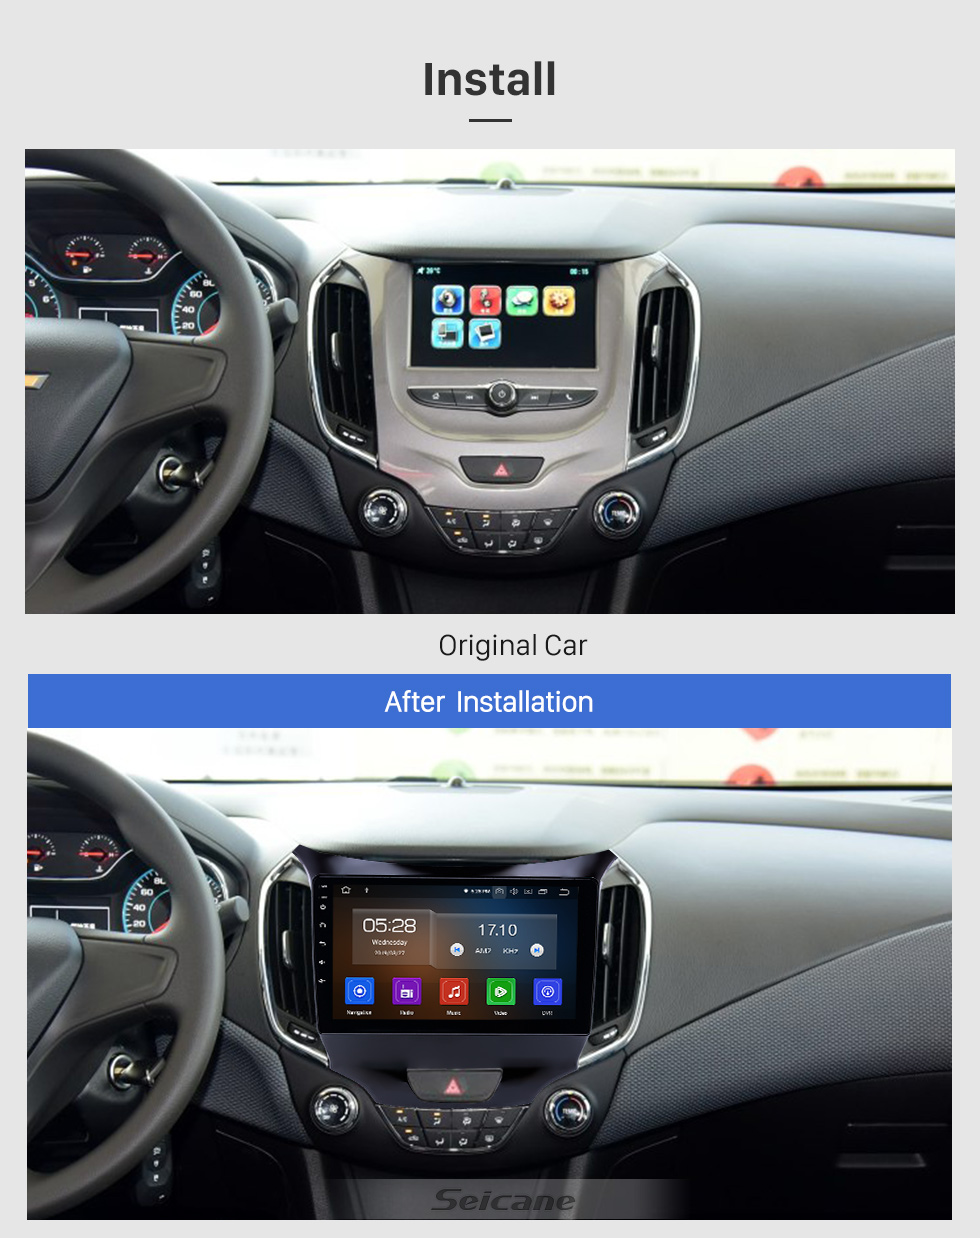 Seicane 9 inch Android 9.0 GPS Navigation Radio for 2015-2018 chevy Chevrolet Cruze with HD Touchscreen Carplay AUX Bluetooth support 1080P